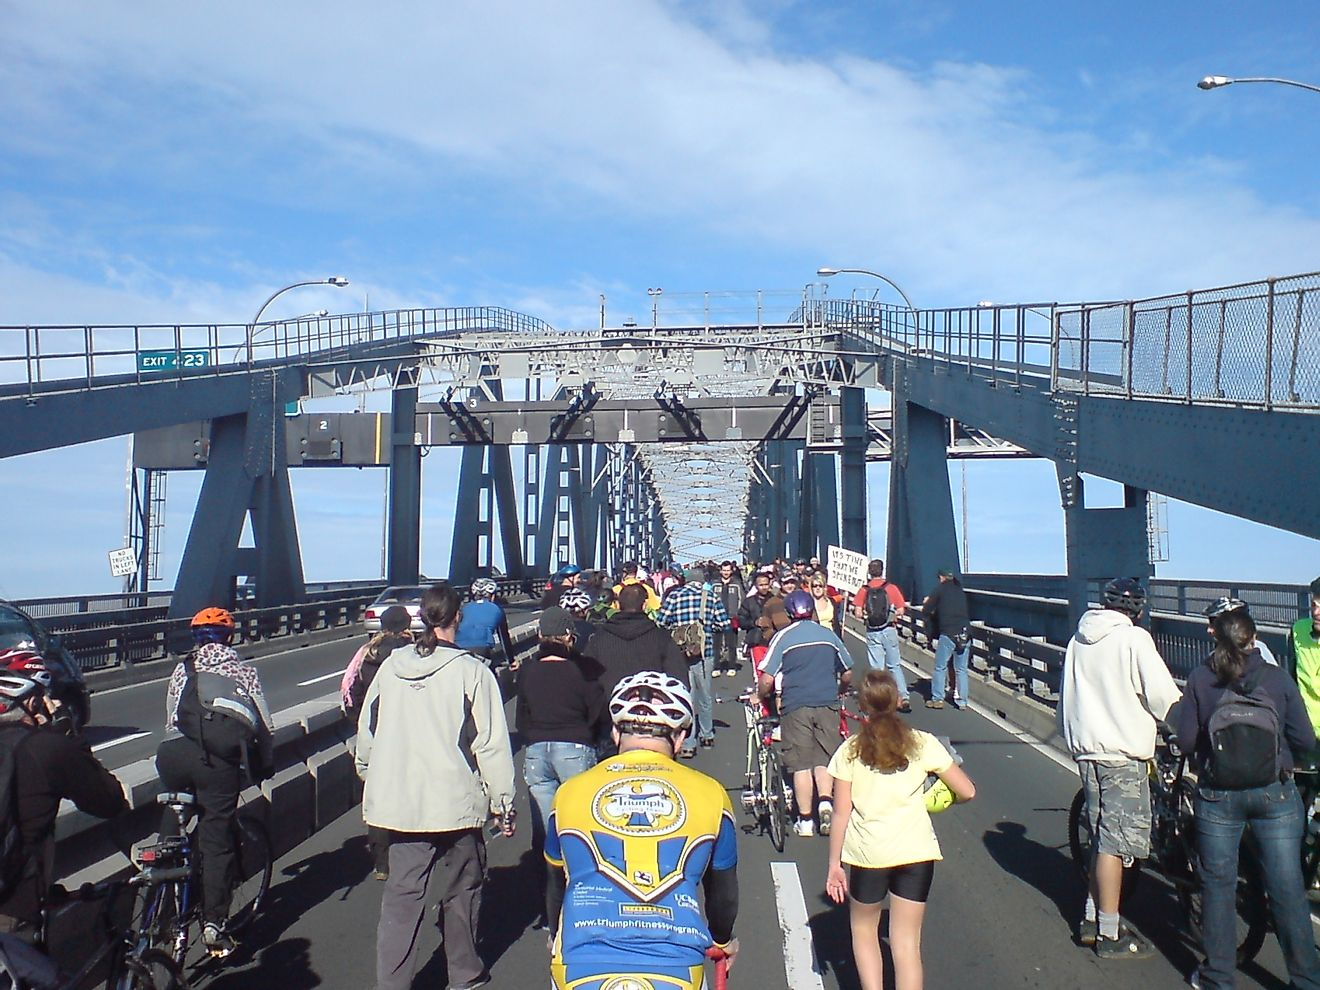 A protest event at Auckland Harbor Bridge in Auckland, New Zealand's most populated city.